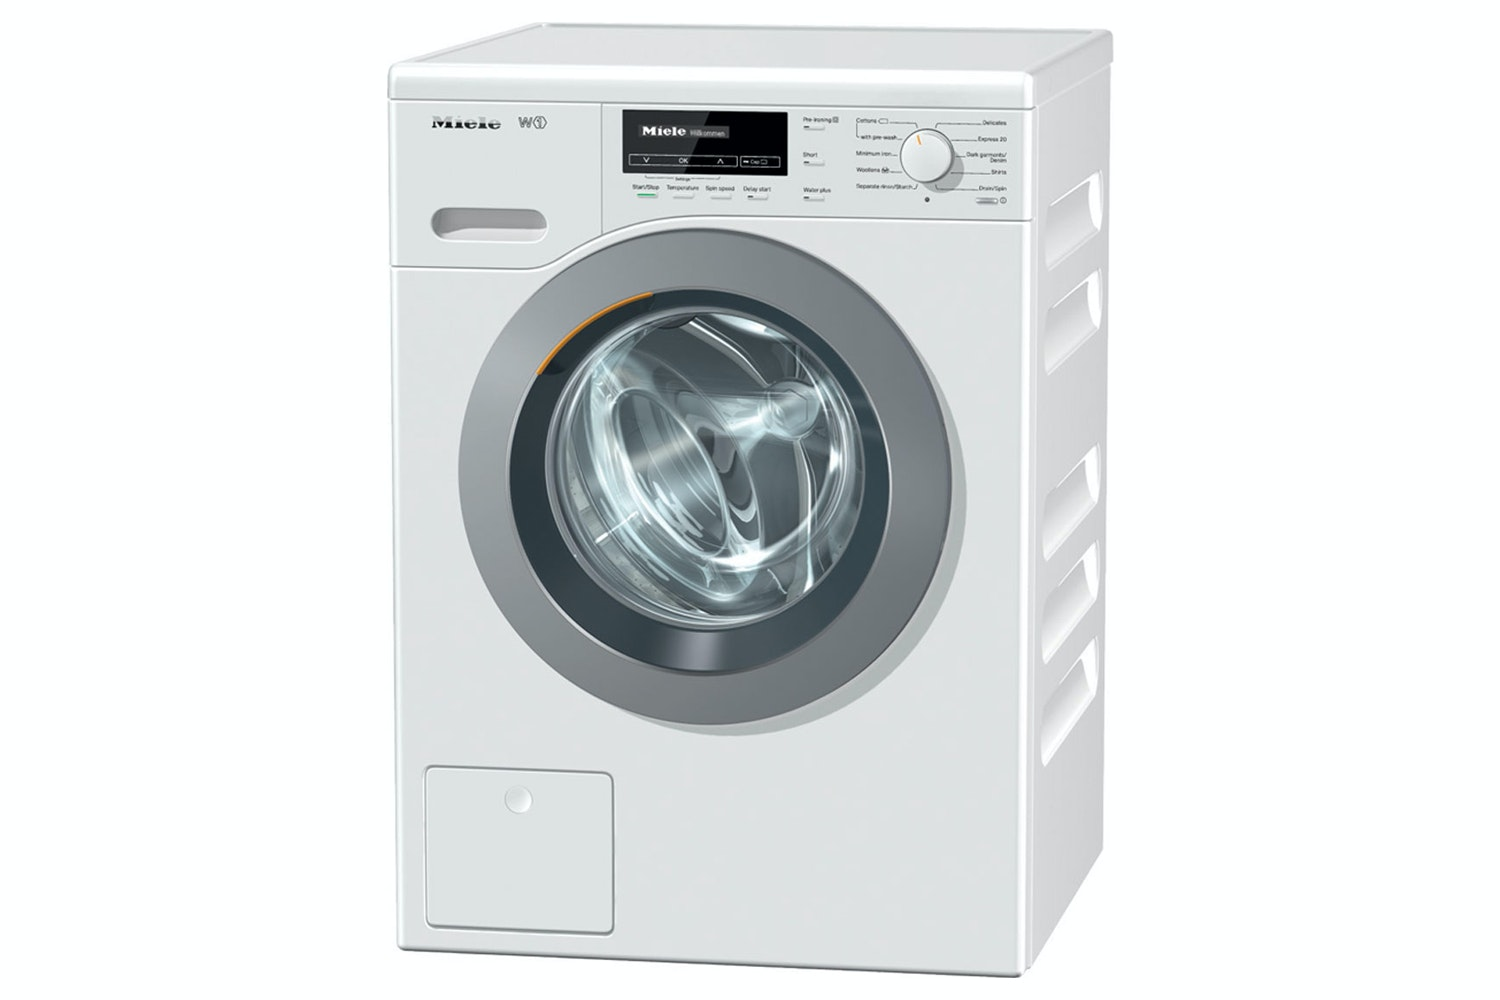 WKB 120  W1 Front-loading washing machine   With Softsteam honeycomb drum and CapDosing for perfect laundry care